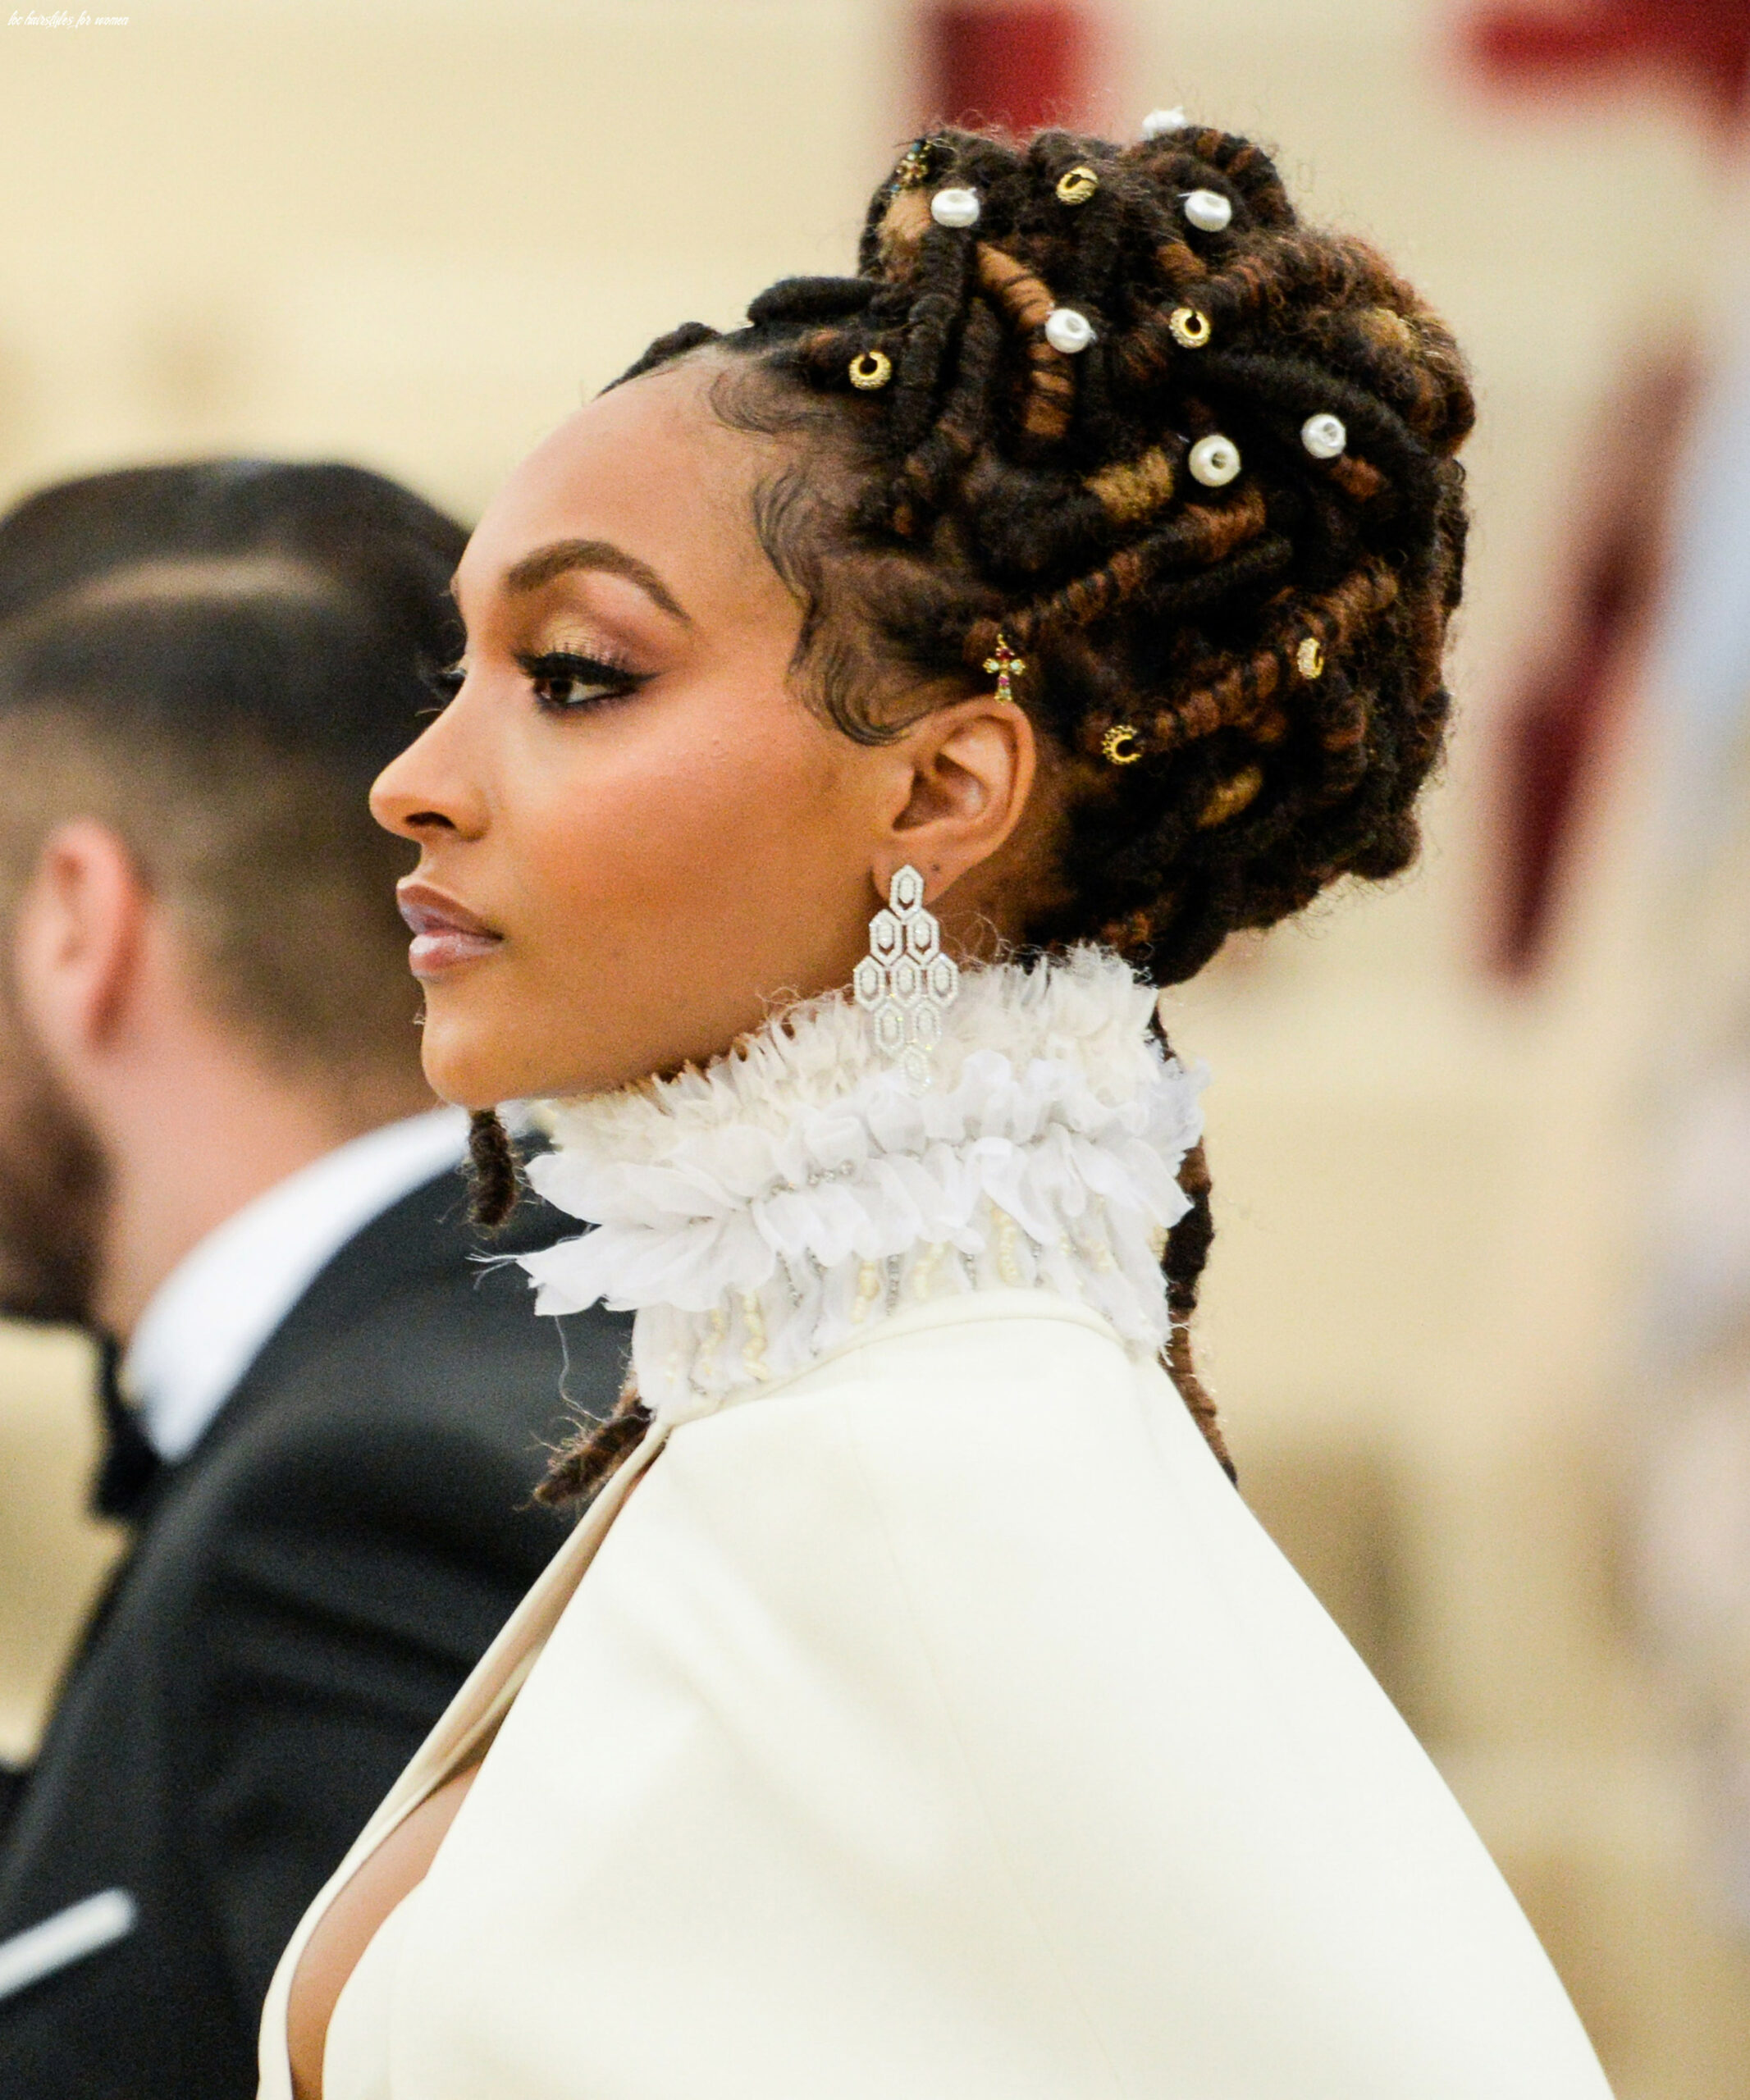 Loc updos, braids, and twists for wedding season loc hairstyles for women